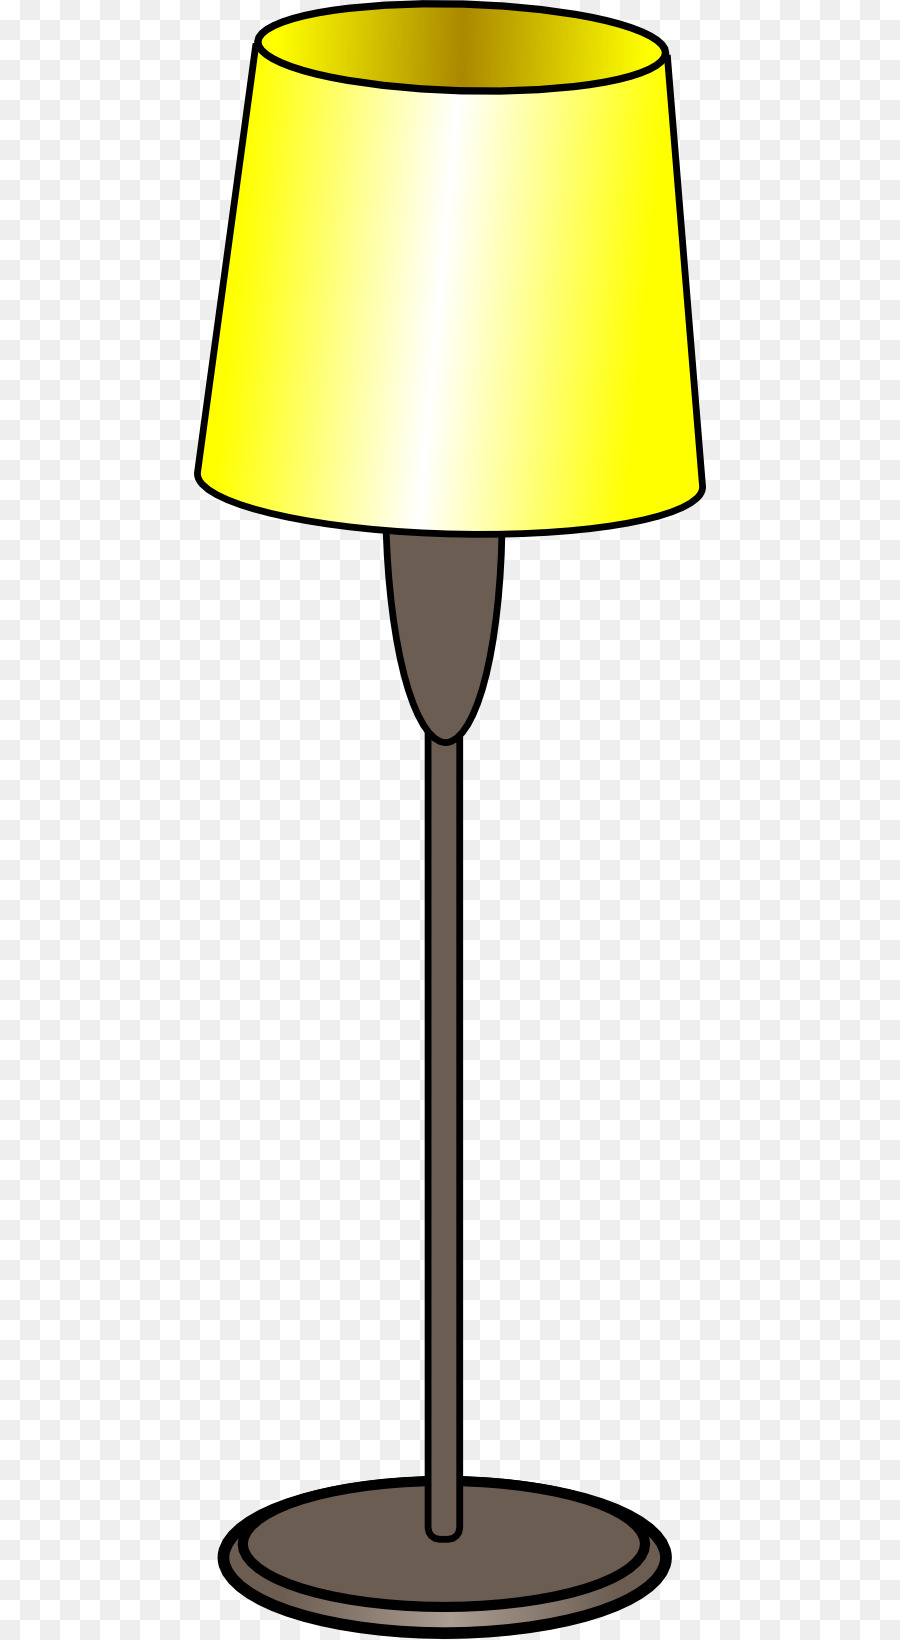 631 Lighting free clipart.